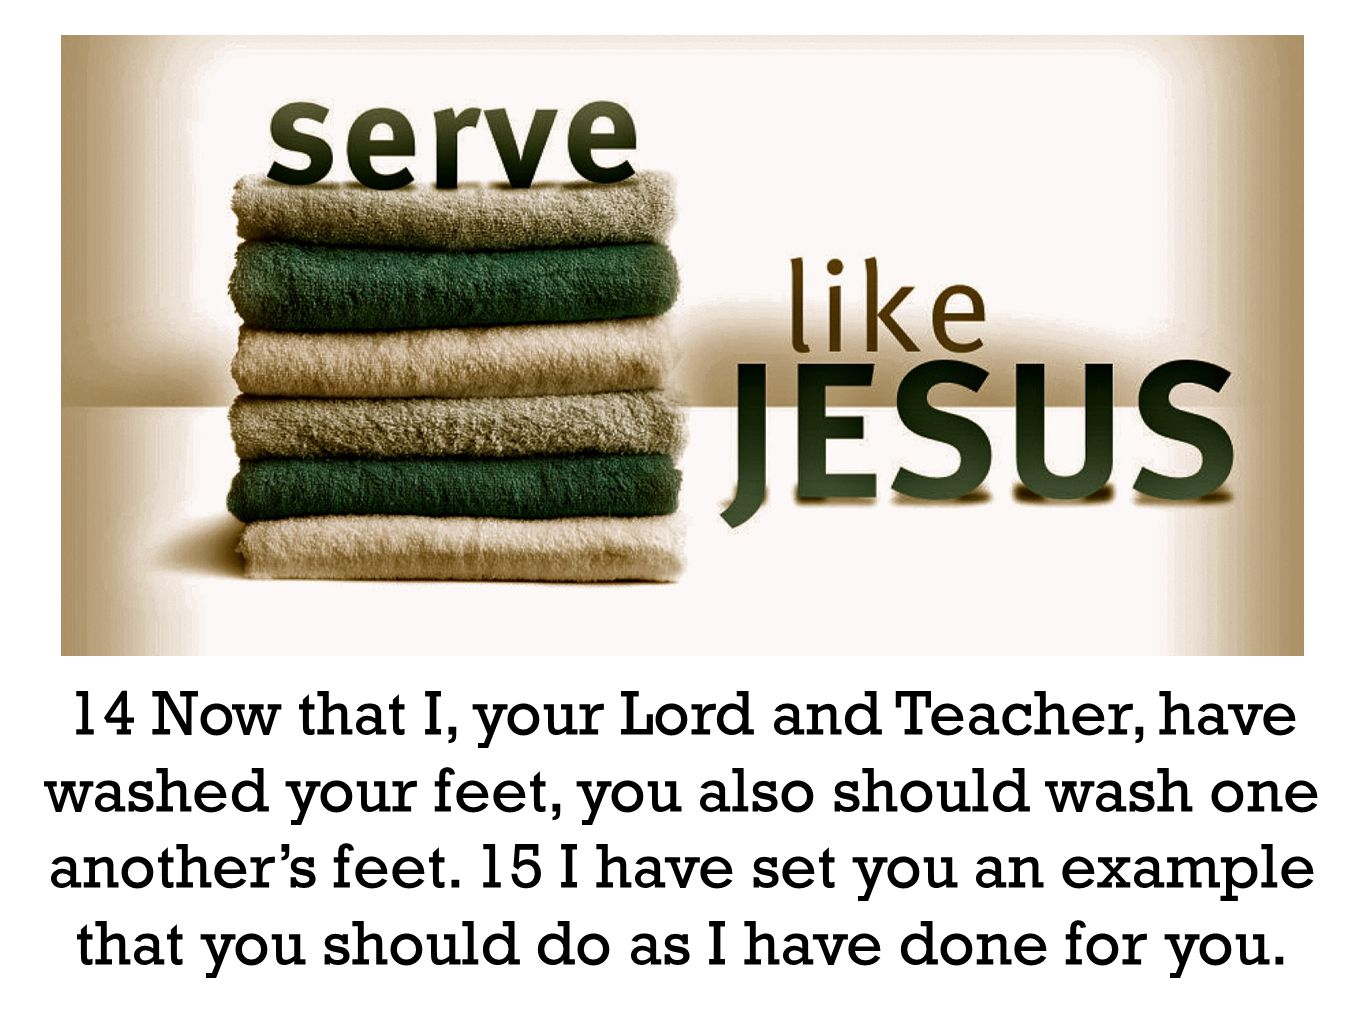 16 Very truly I tell you, no servant is greater than his master, nor is a messenger greater than the one who sent him.